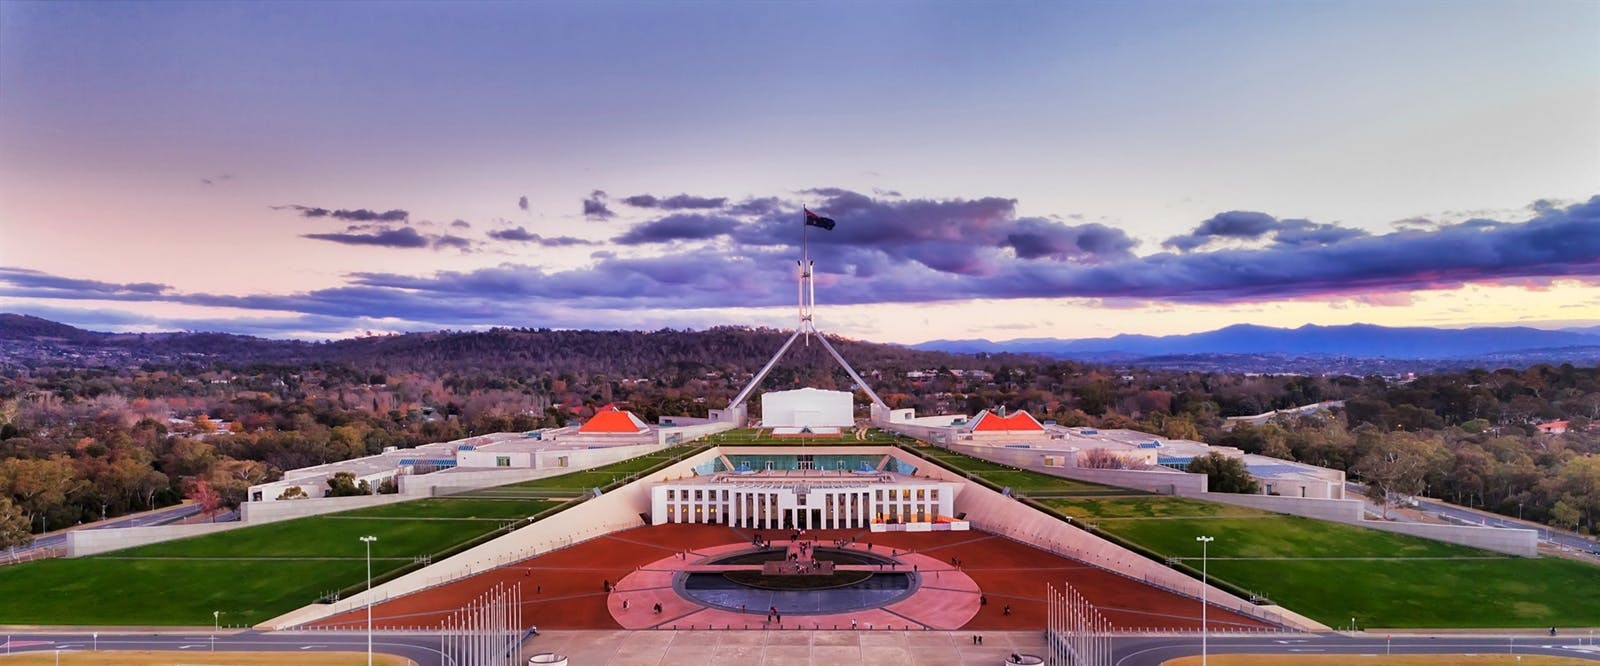 aerial view around capitol hill in canberra